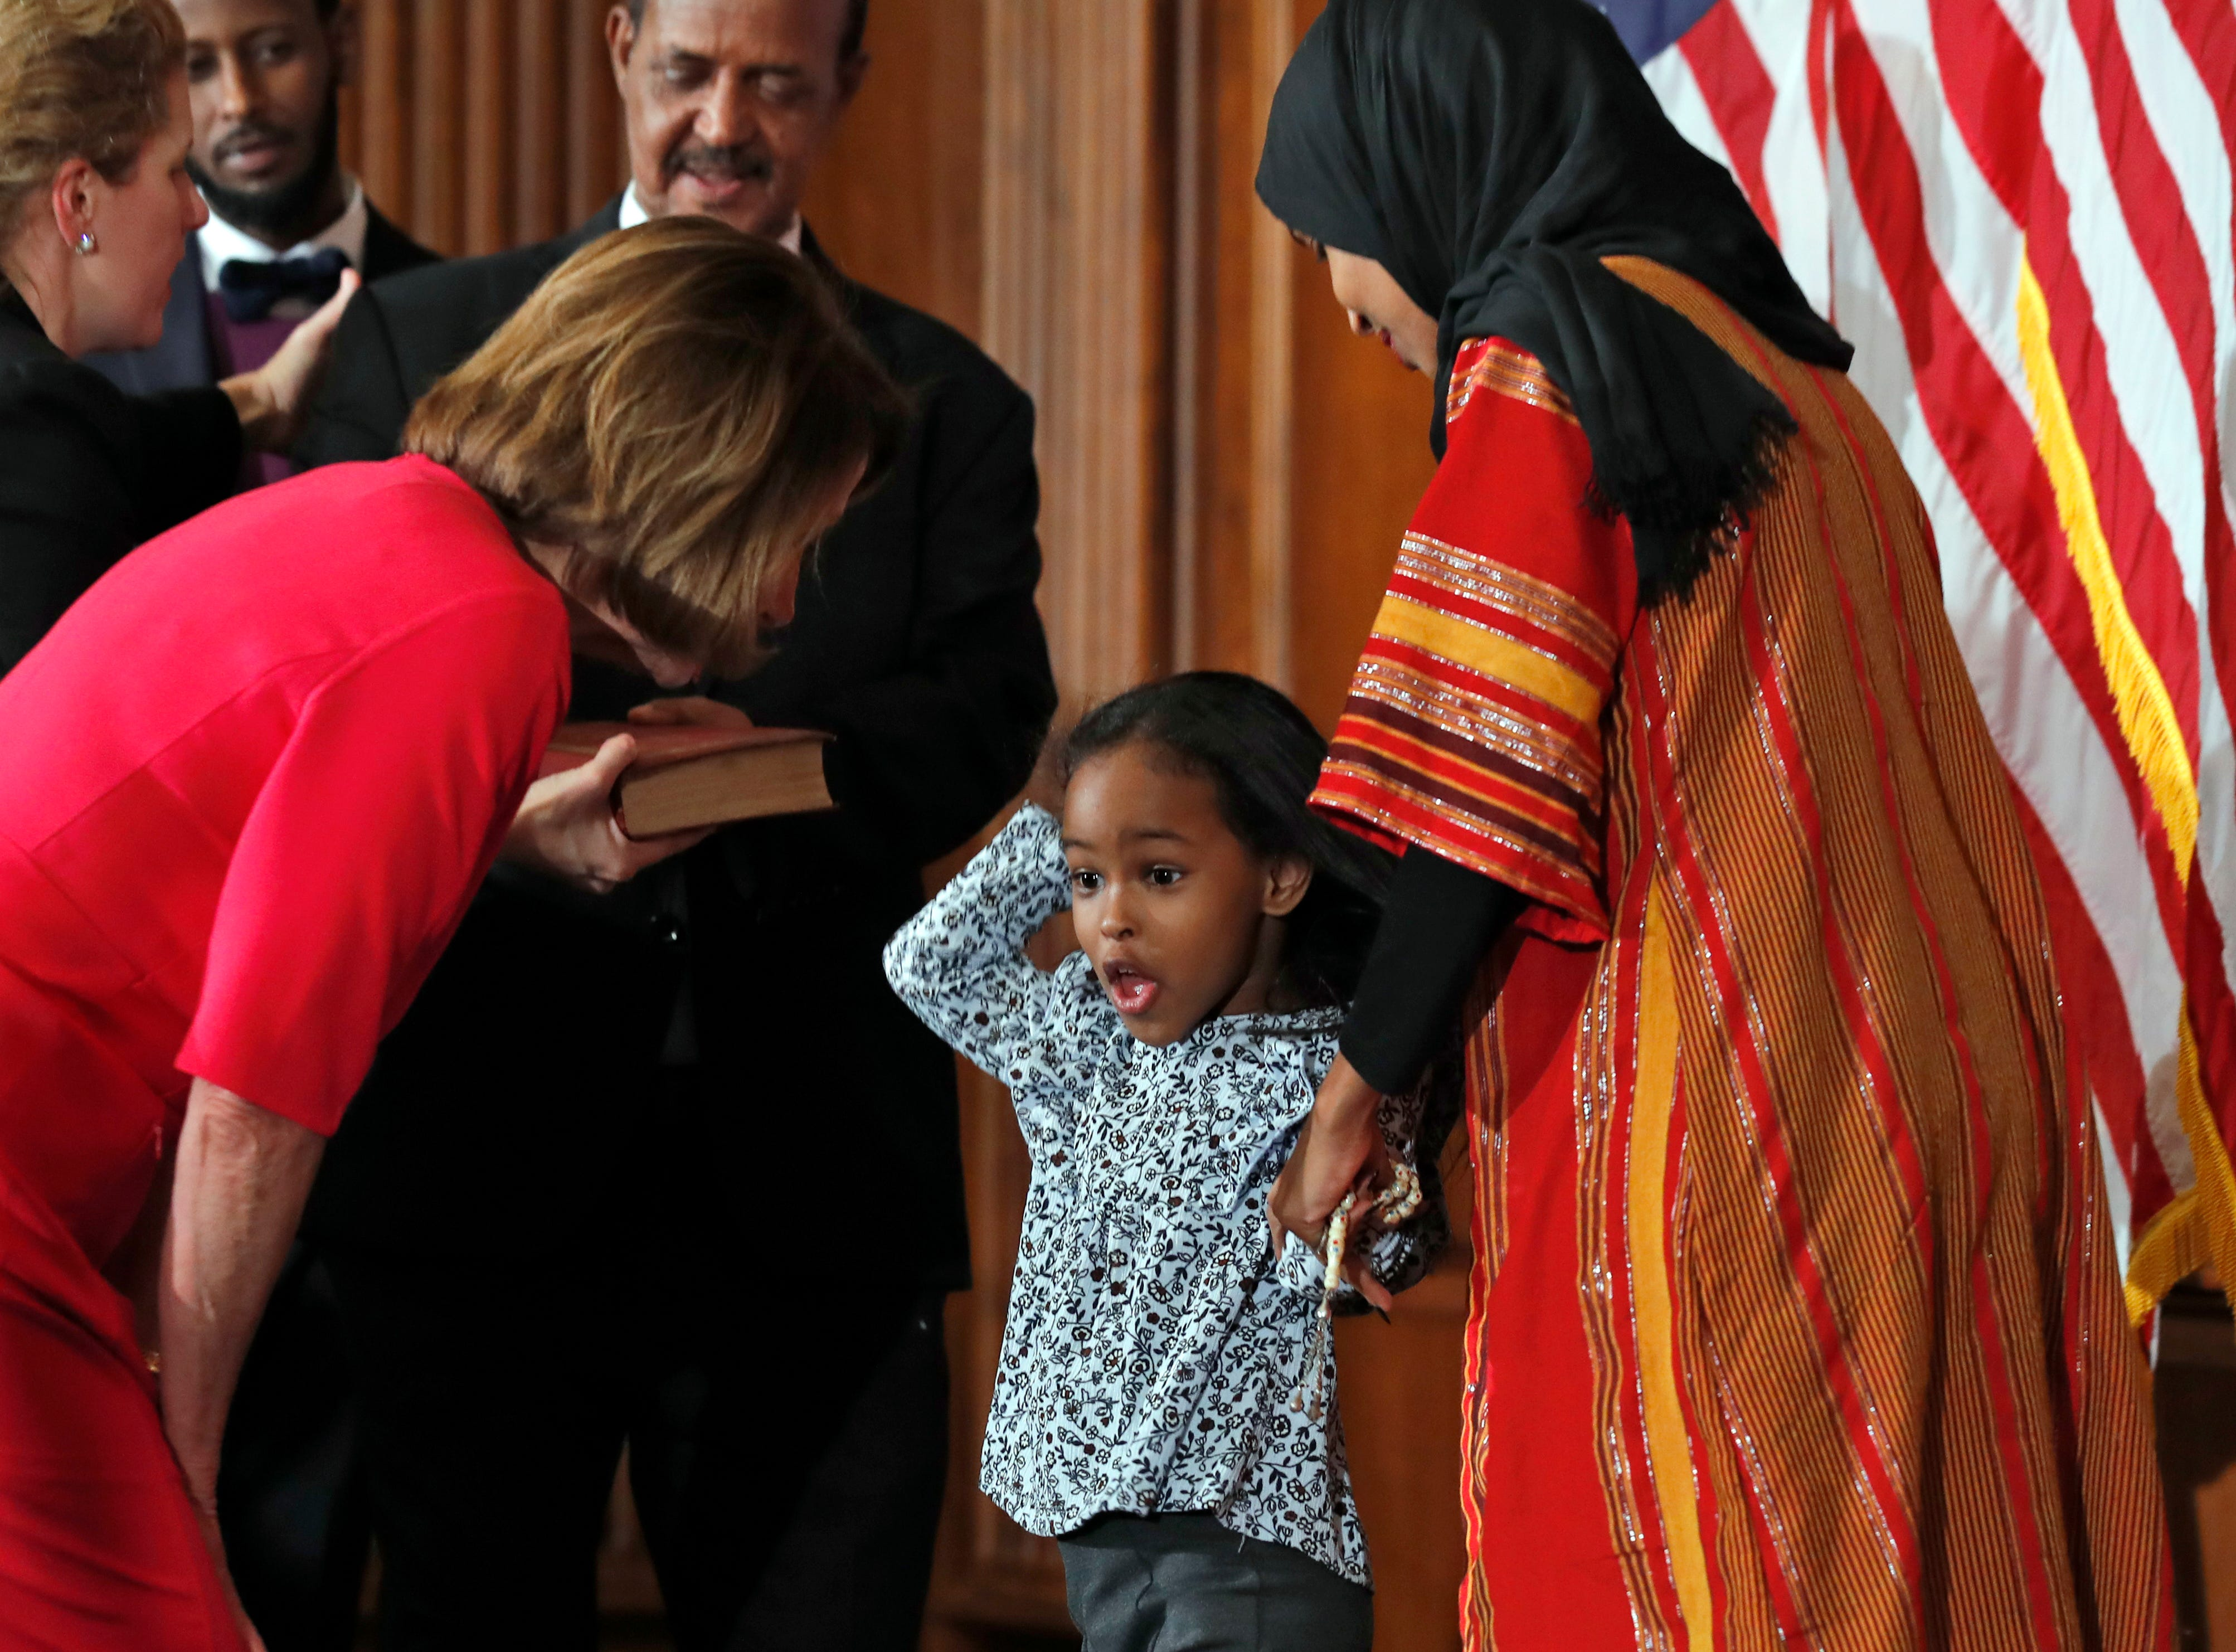 House Speaker Nancy Pelosi of Calif., left, greets a child with Rep. Ilhan Omar, D-Minn., during a ceremonial swearing-in on Capitol Hill, Thursday, Jan. 3, 2019 in Washington during the opening session of the 116th Congress.. (AP Photo/Alex Brandon)